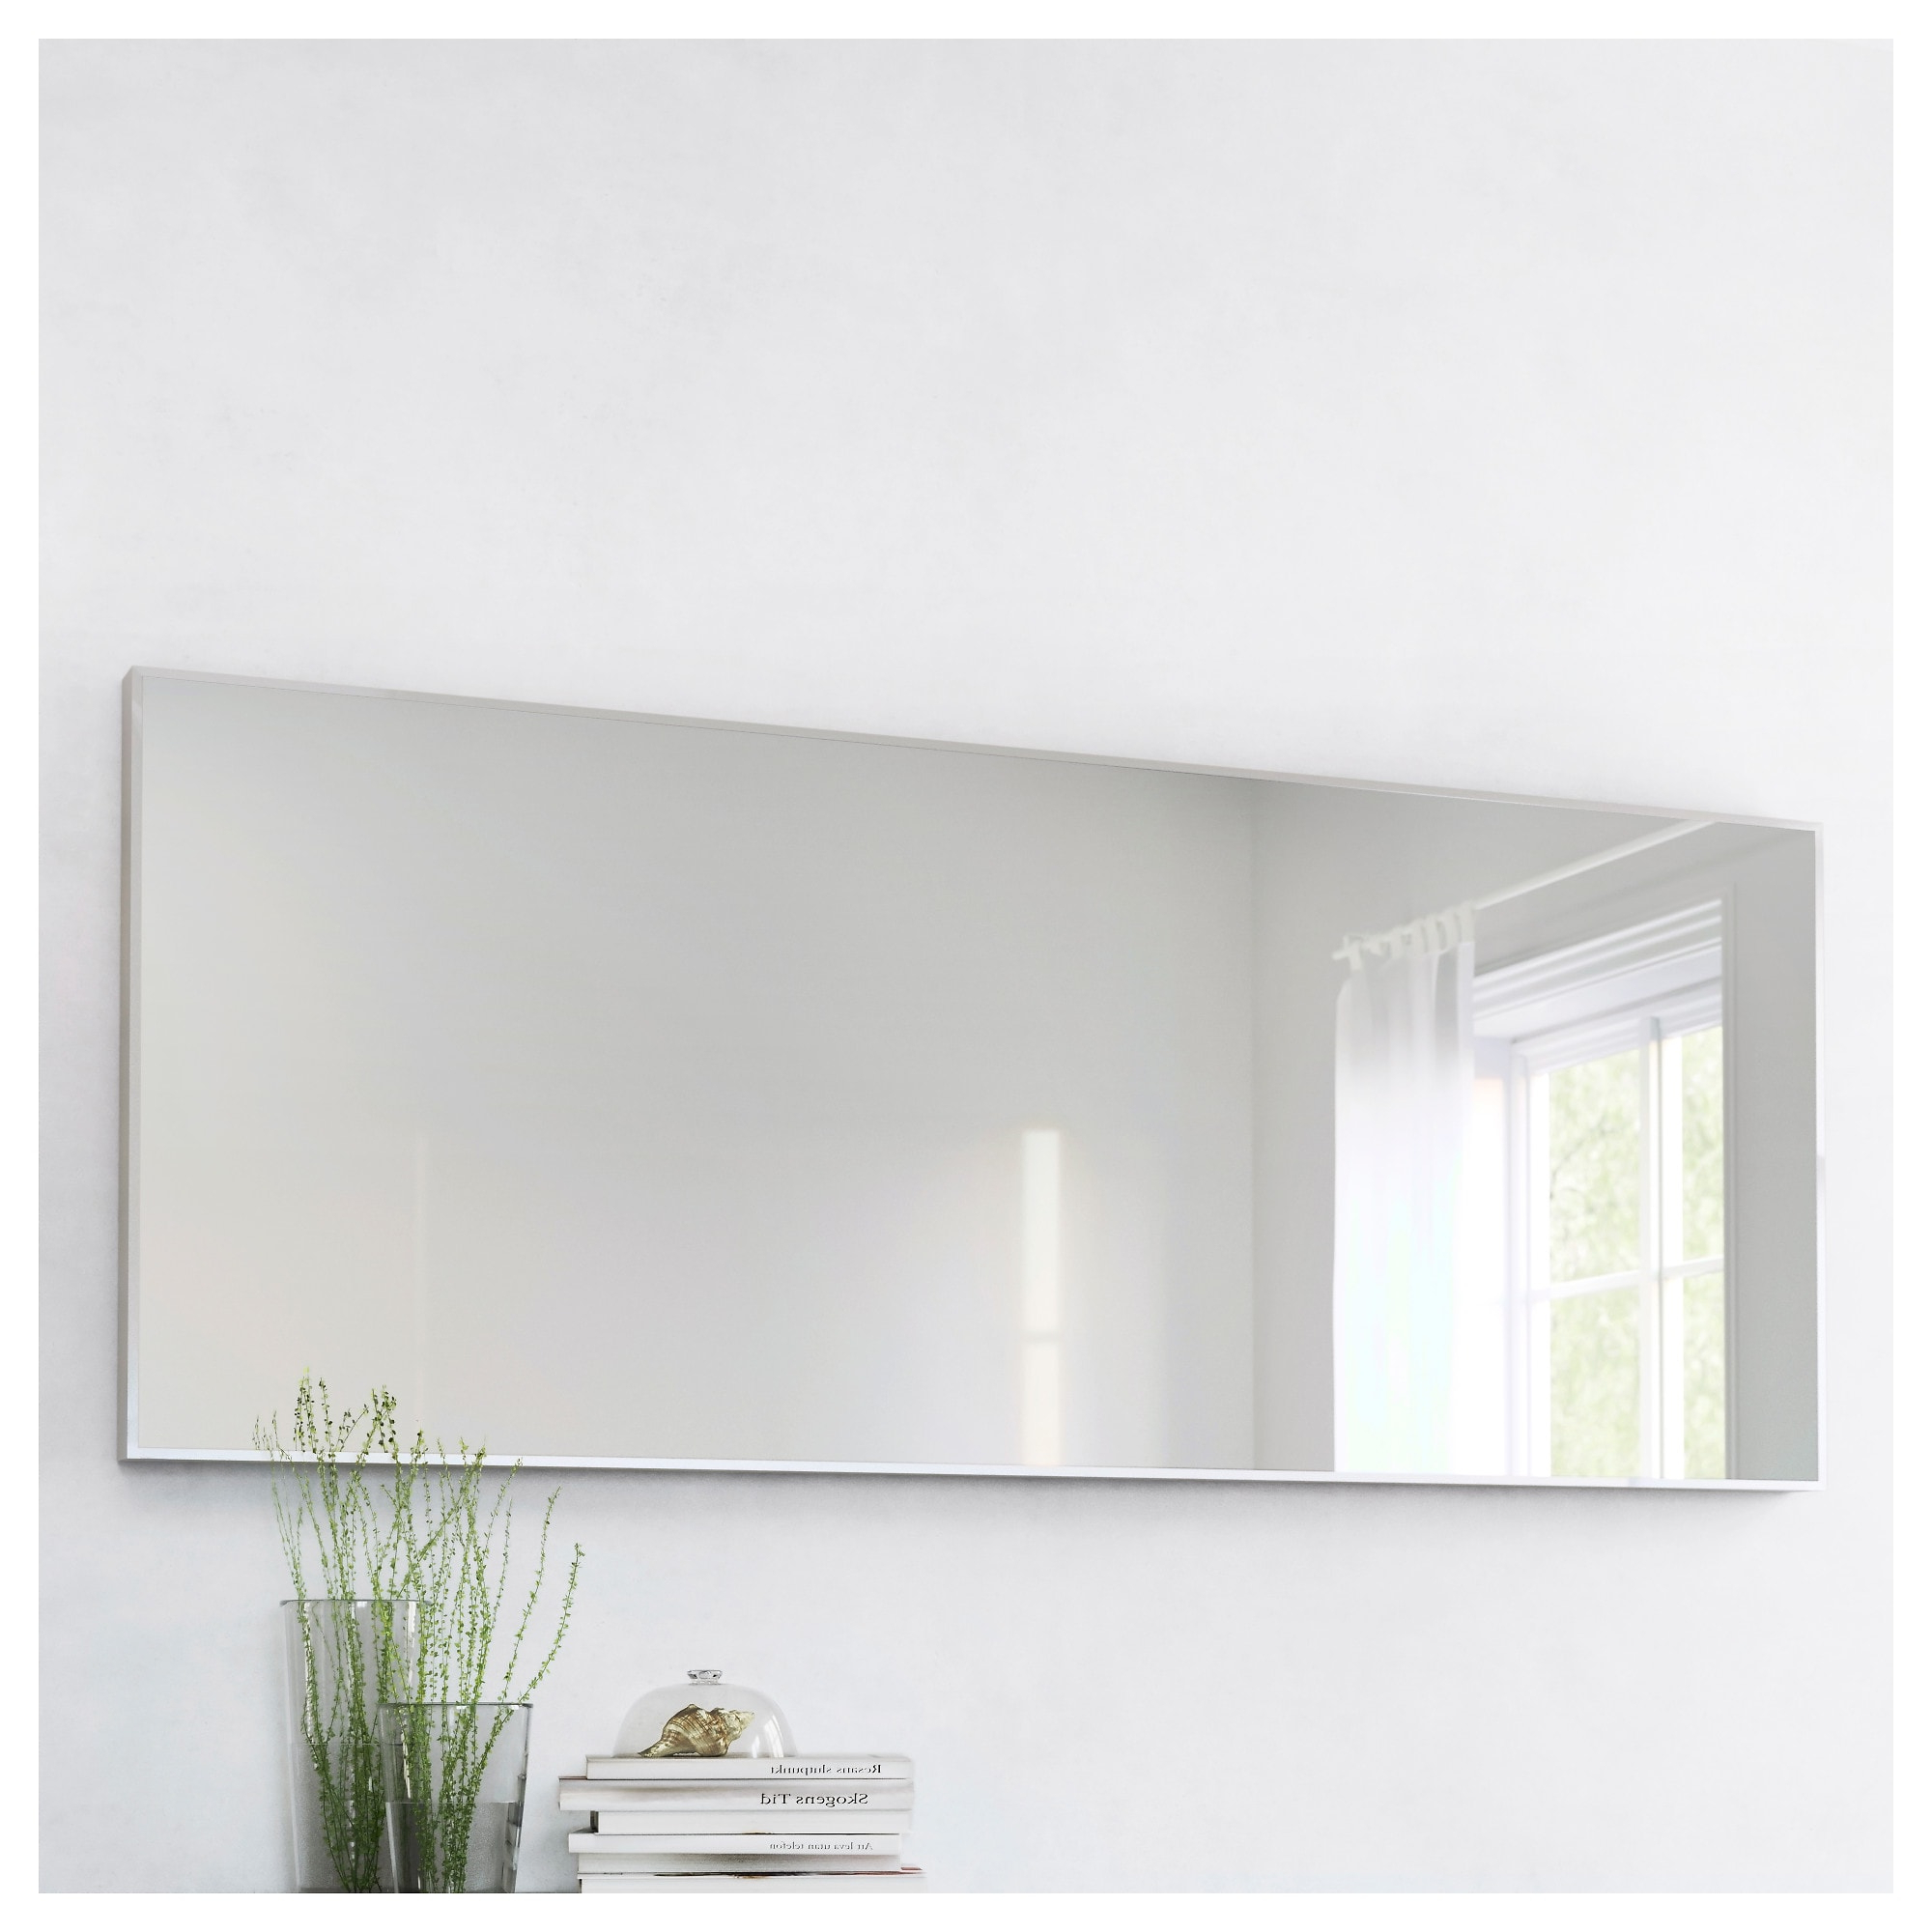 2020 Hovet – Mirror, Aluminum Regarding Big Wall Mirrors From Ikea (View 5 of 20)